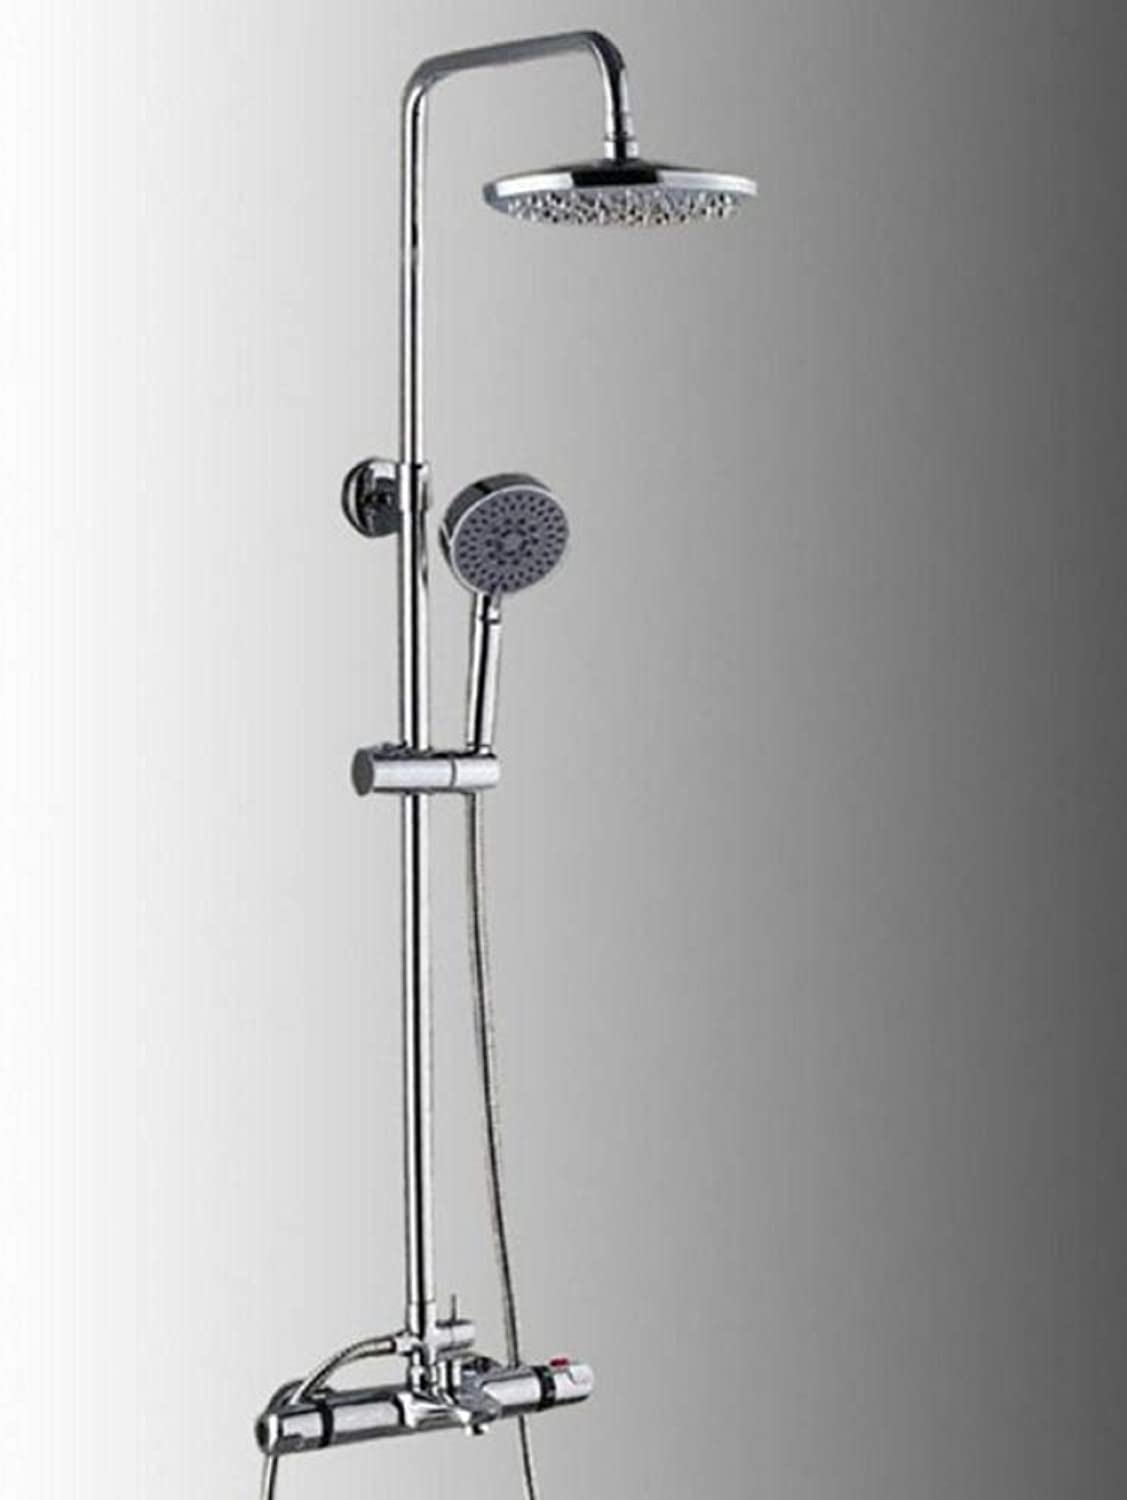 R&Y Shower Faucet Set Thermostatic Shower Faucet Set Mixer Valve Set Install The Box Mixing Valve Handheld Bathroom Fold The Faucet Bath Shower Set